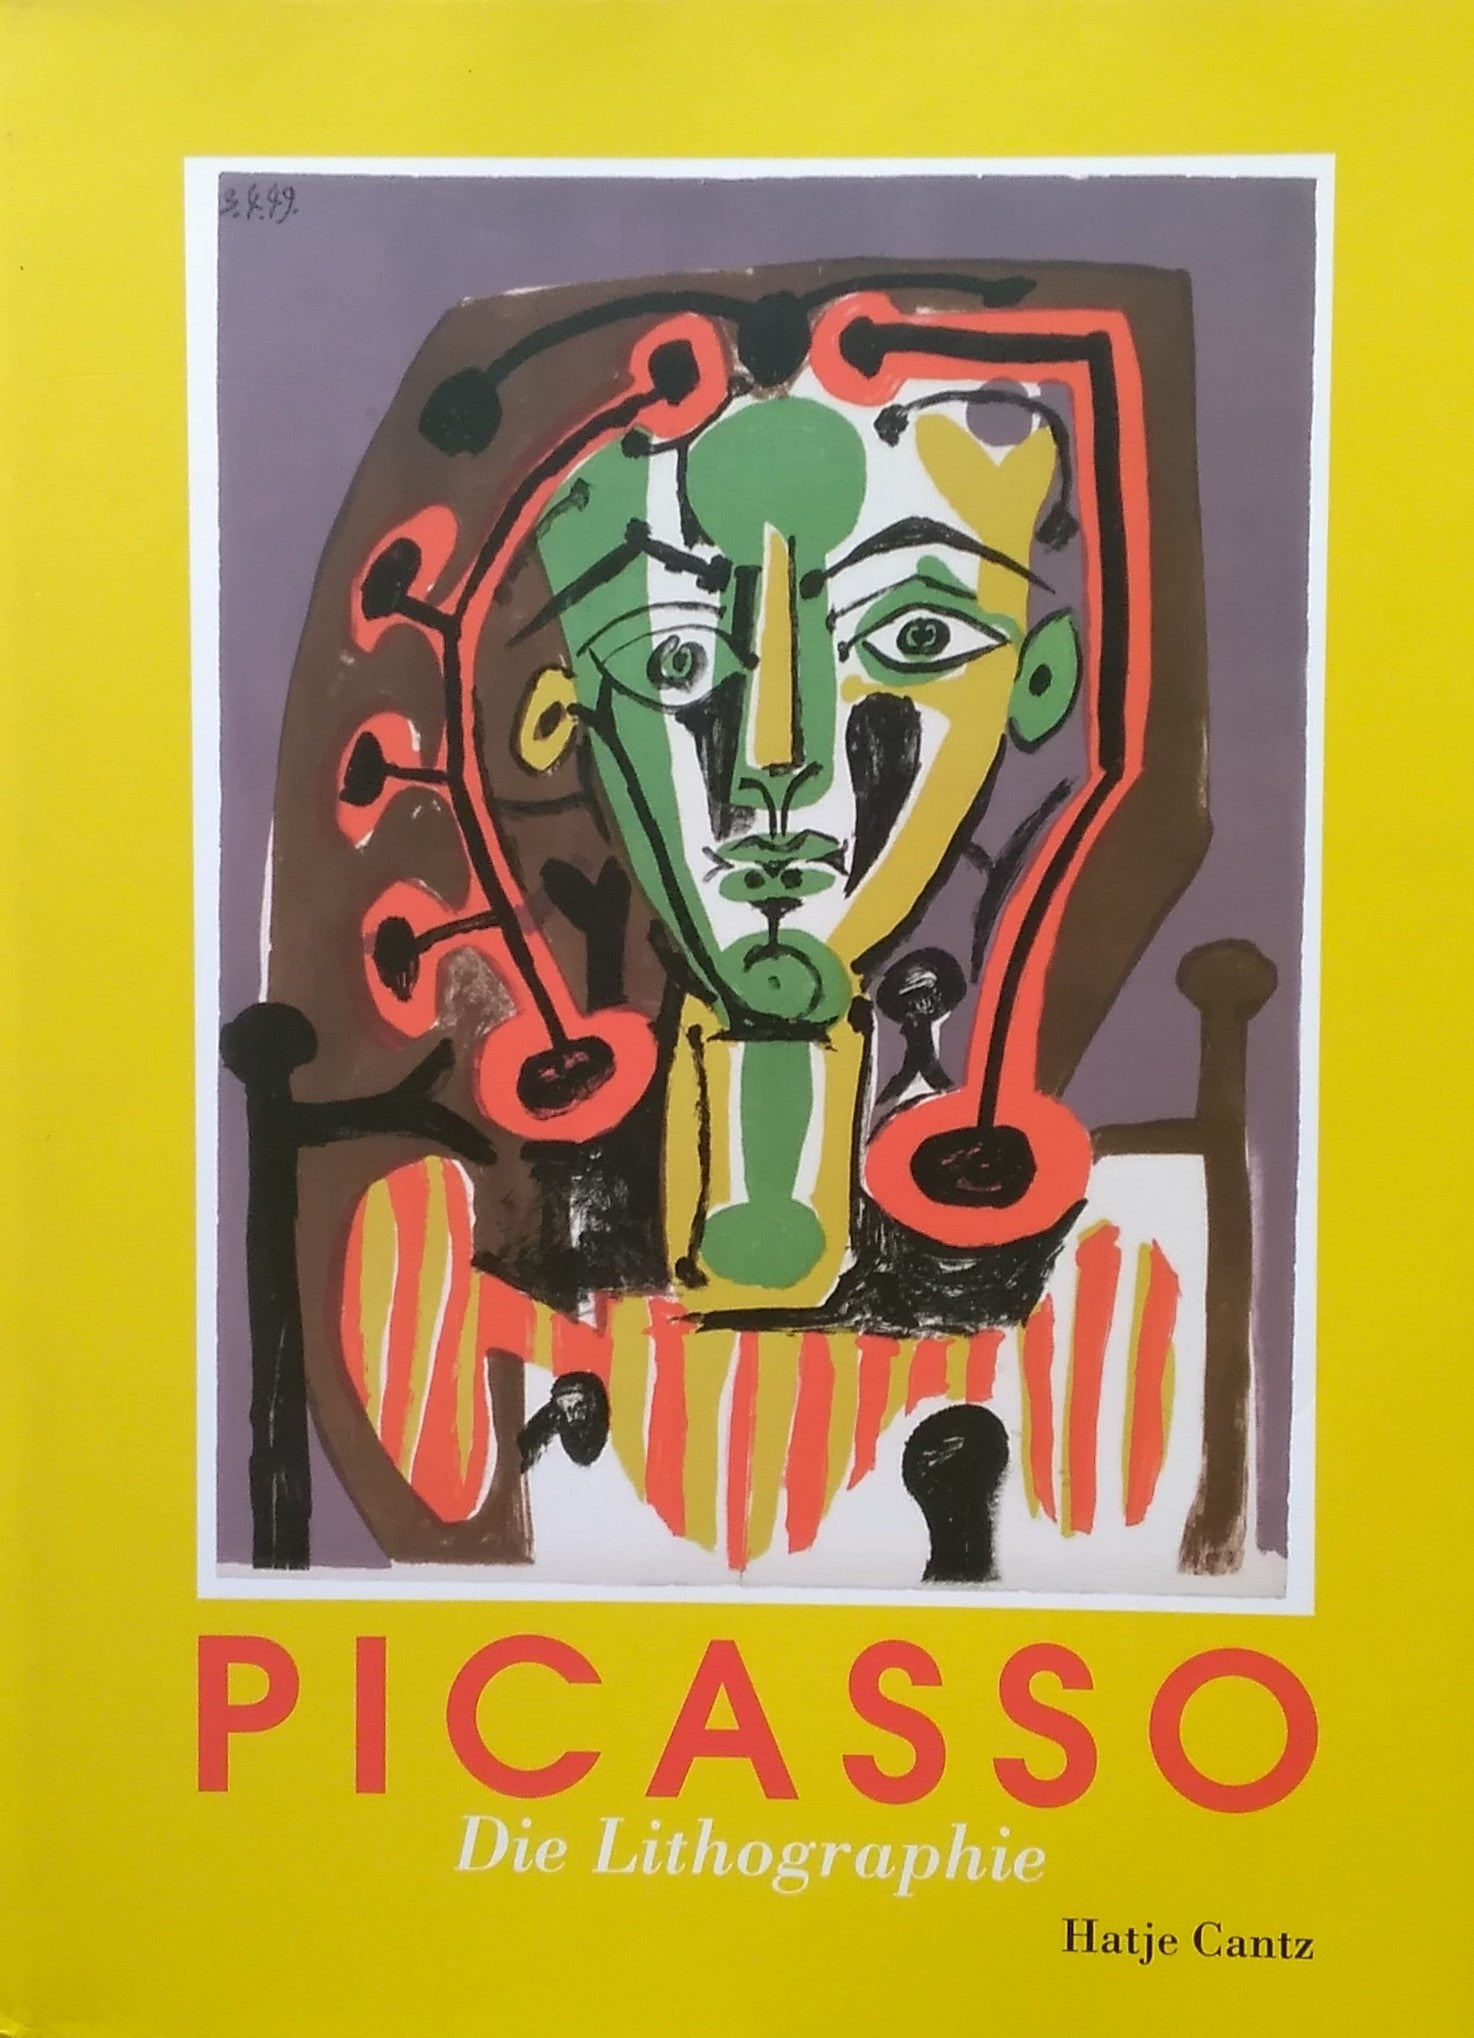 Pablo Picasso Die Lithographie パブロ・ピカソ